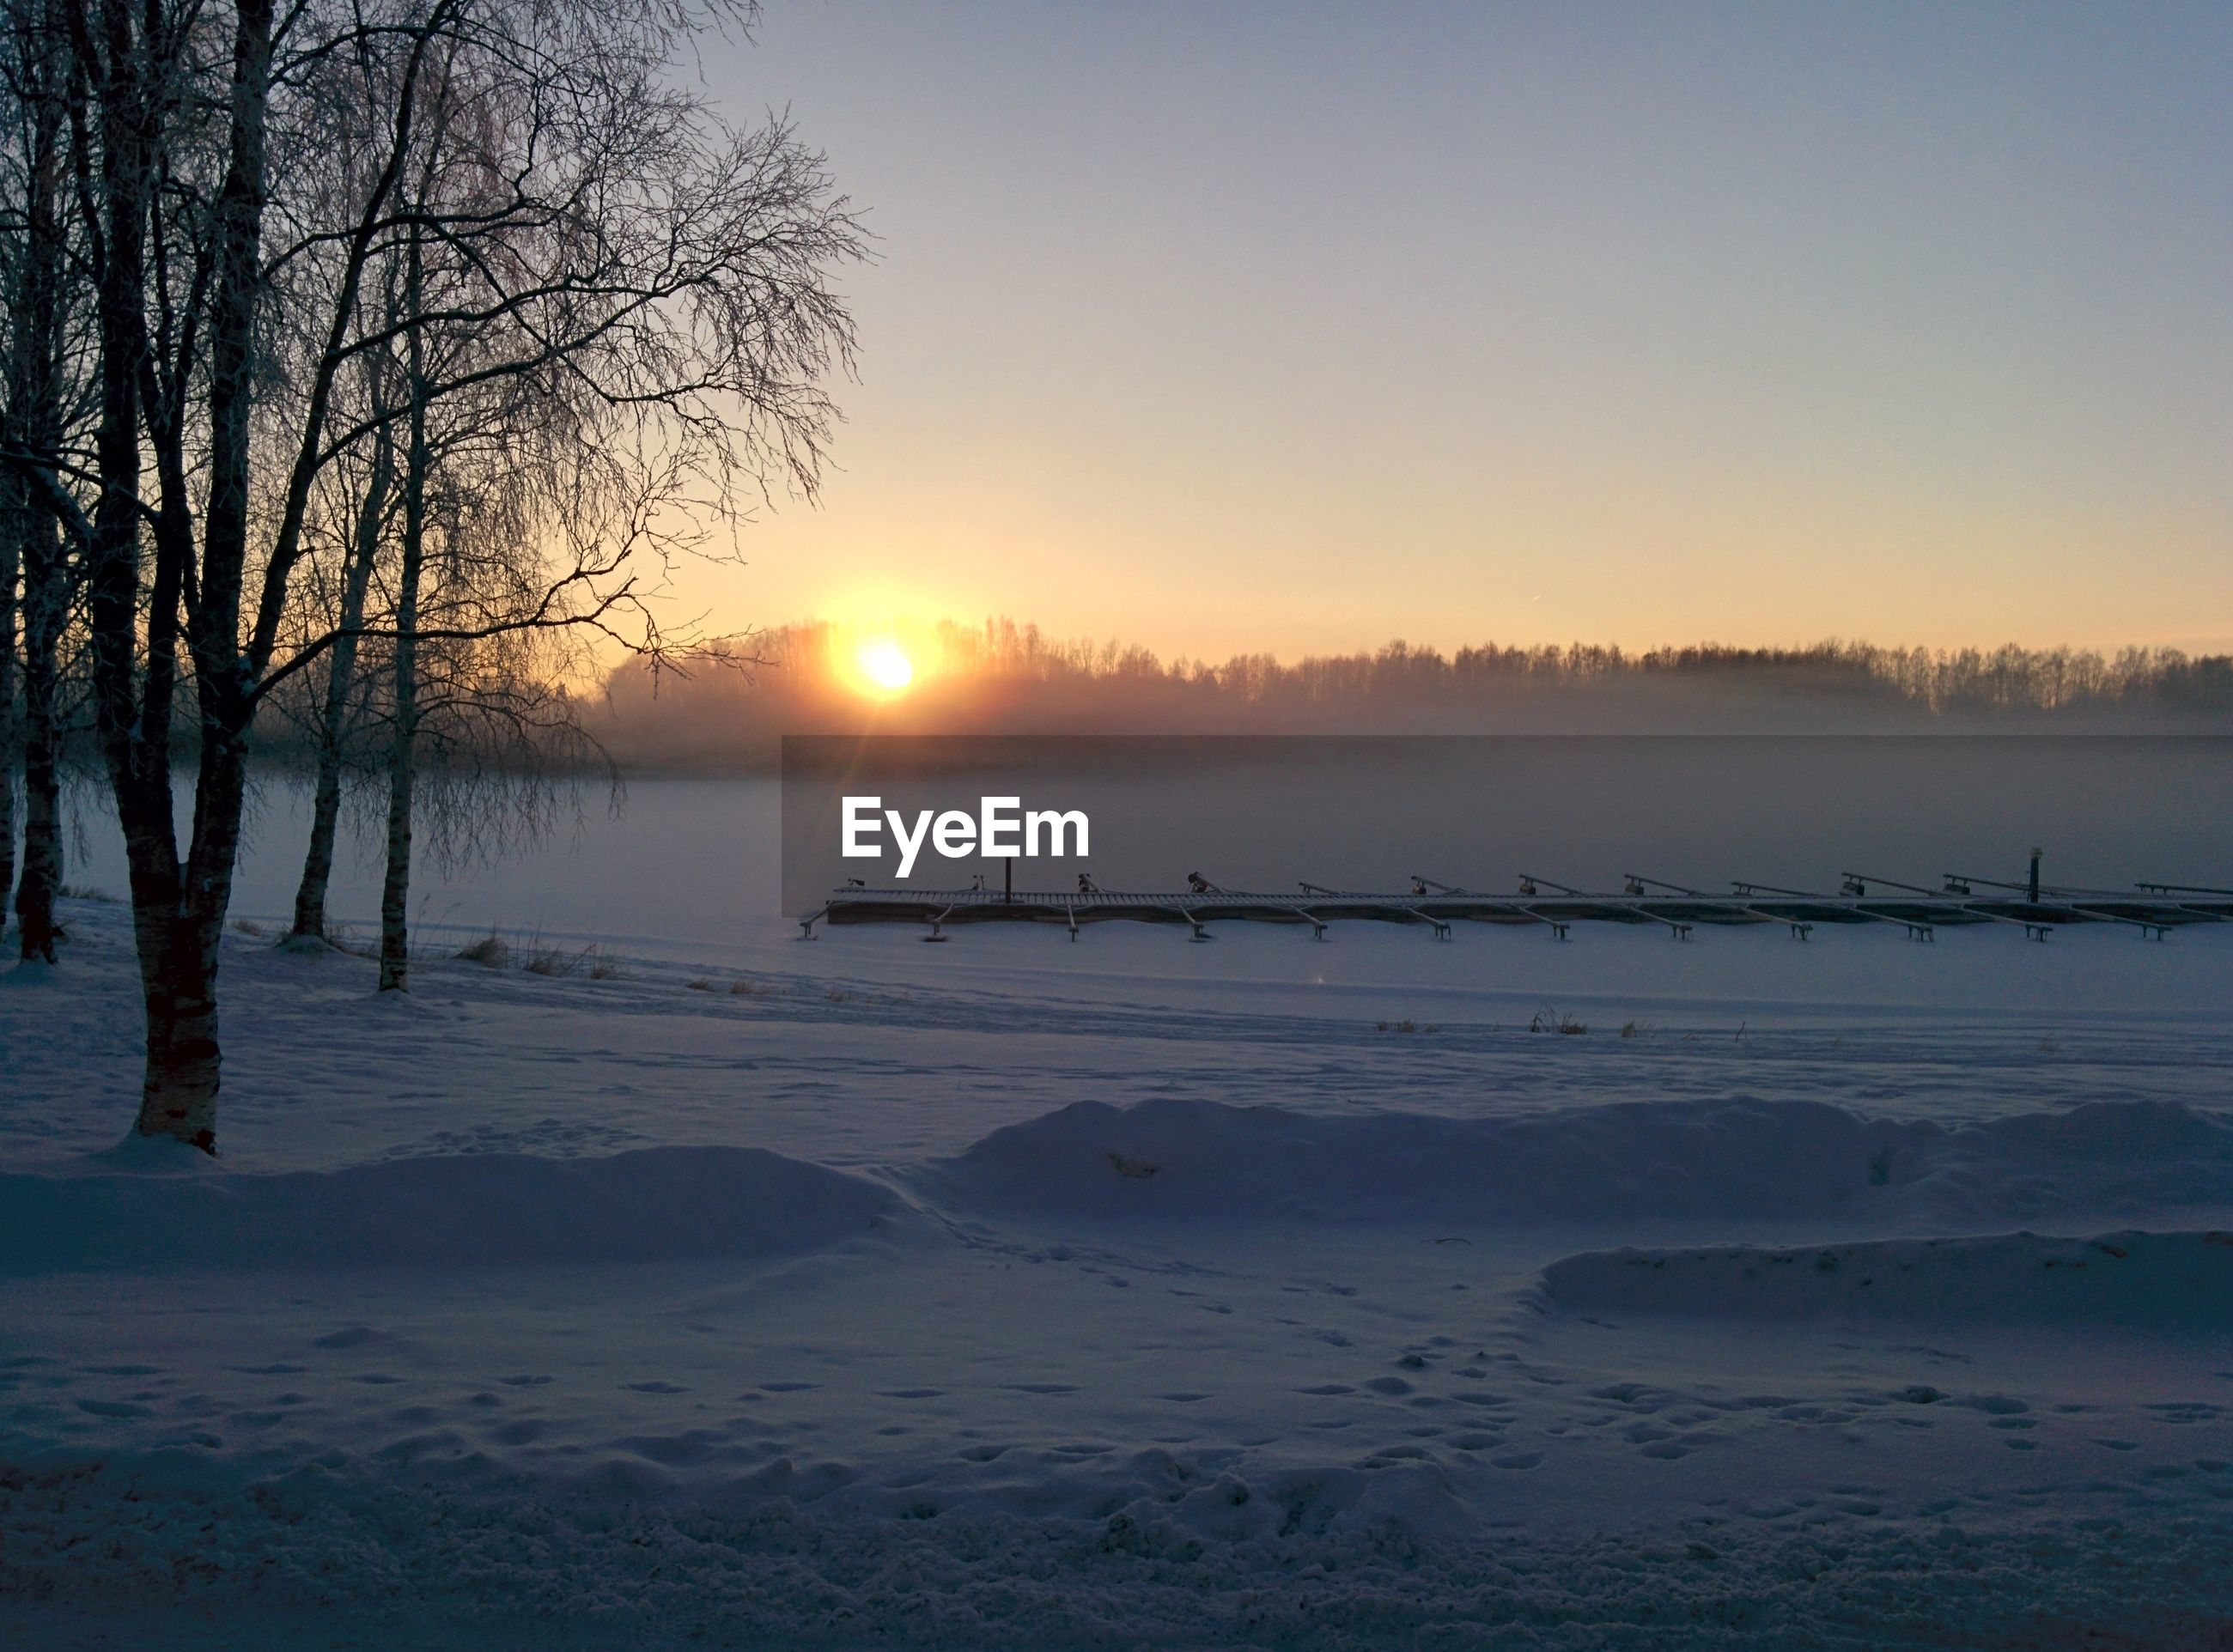 sunset, tranquil scene, tranquility, scenics, sun, beauty in nature, winter, silhouette, bare tree, nature, cold temperature, water, tree, orange color, snow, lake, idyllic, sky, landscape, clear sky